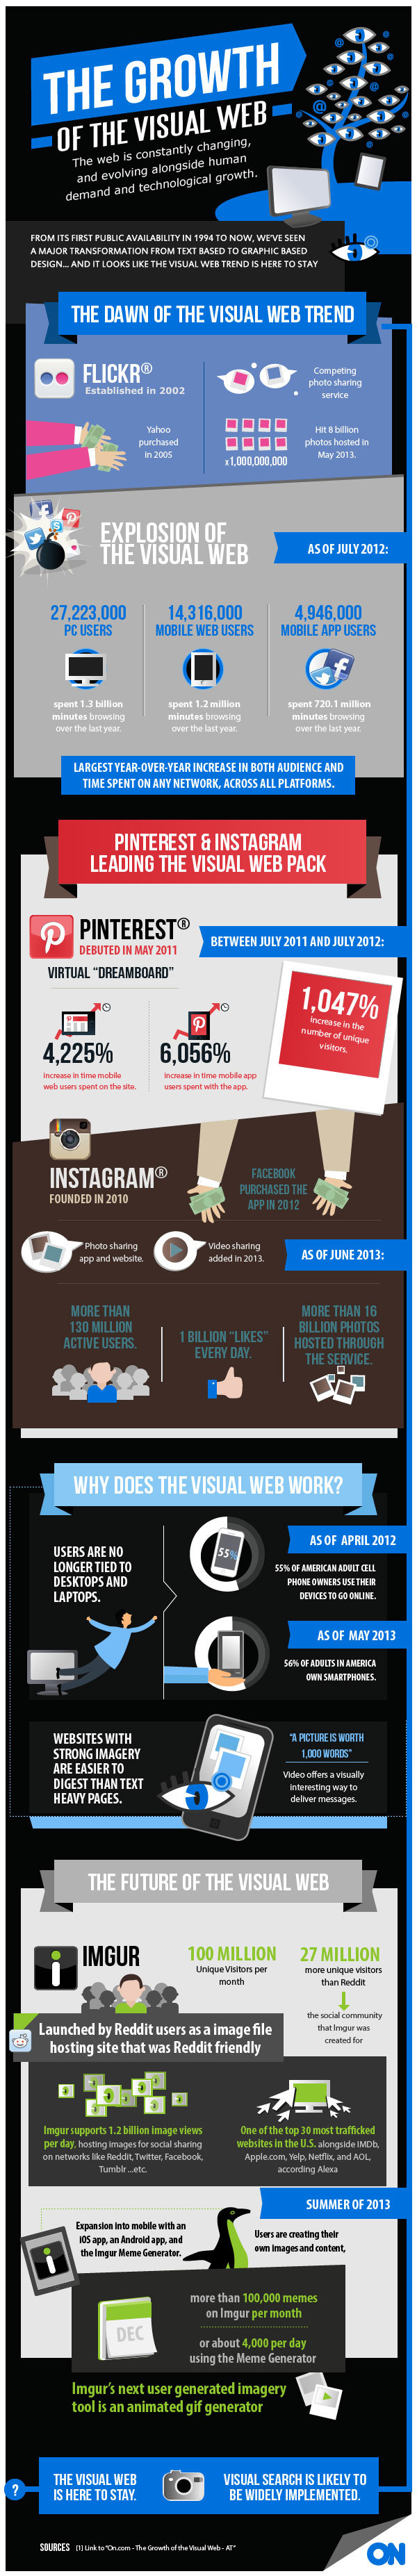 The statistics behind the visual web